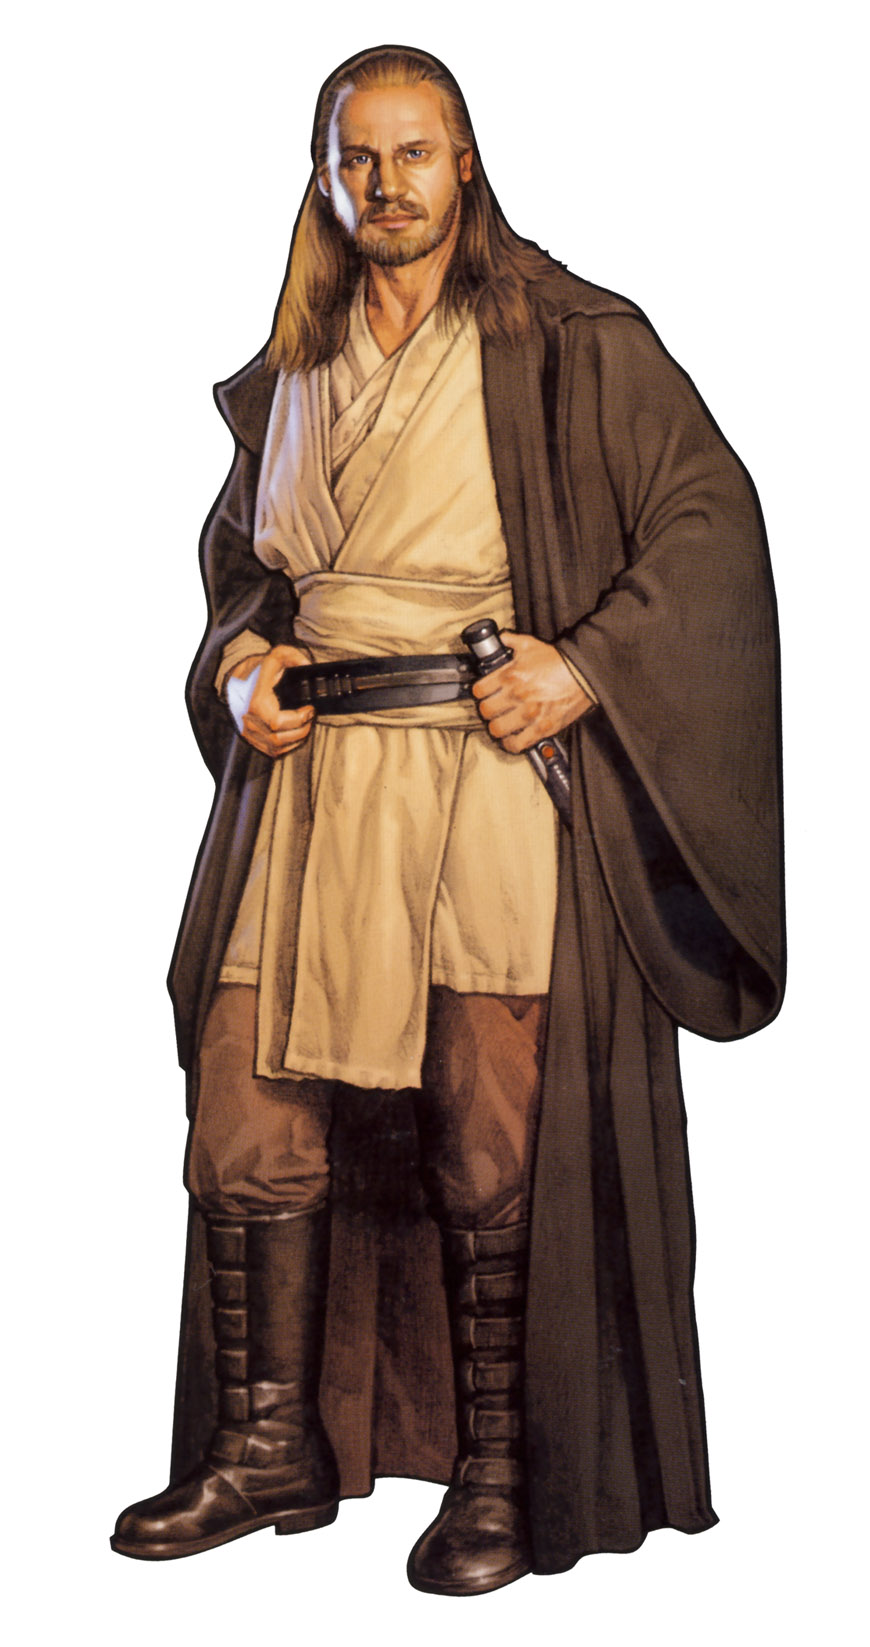 http://www.starwars-universe.com/images/encyclopedie/personnages/republicains/Qui_Gon_Jinn_1.jpg